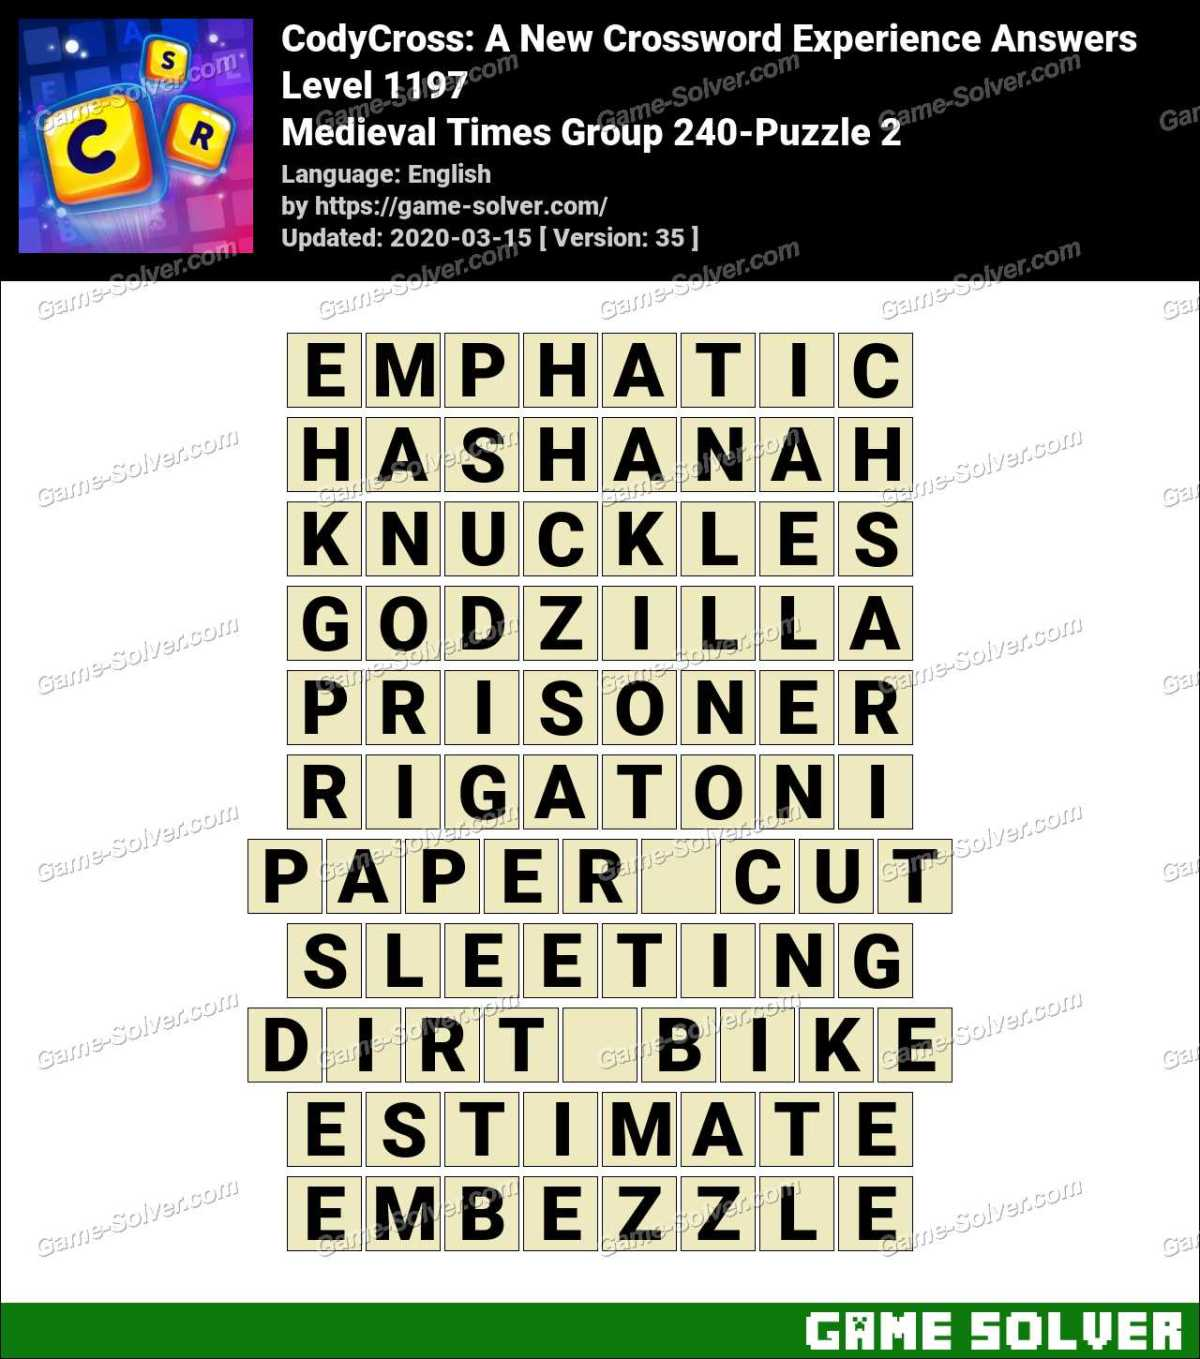 CodyCross Medieval Times Group 240-Puzzle 2 Answers